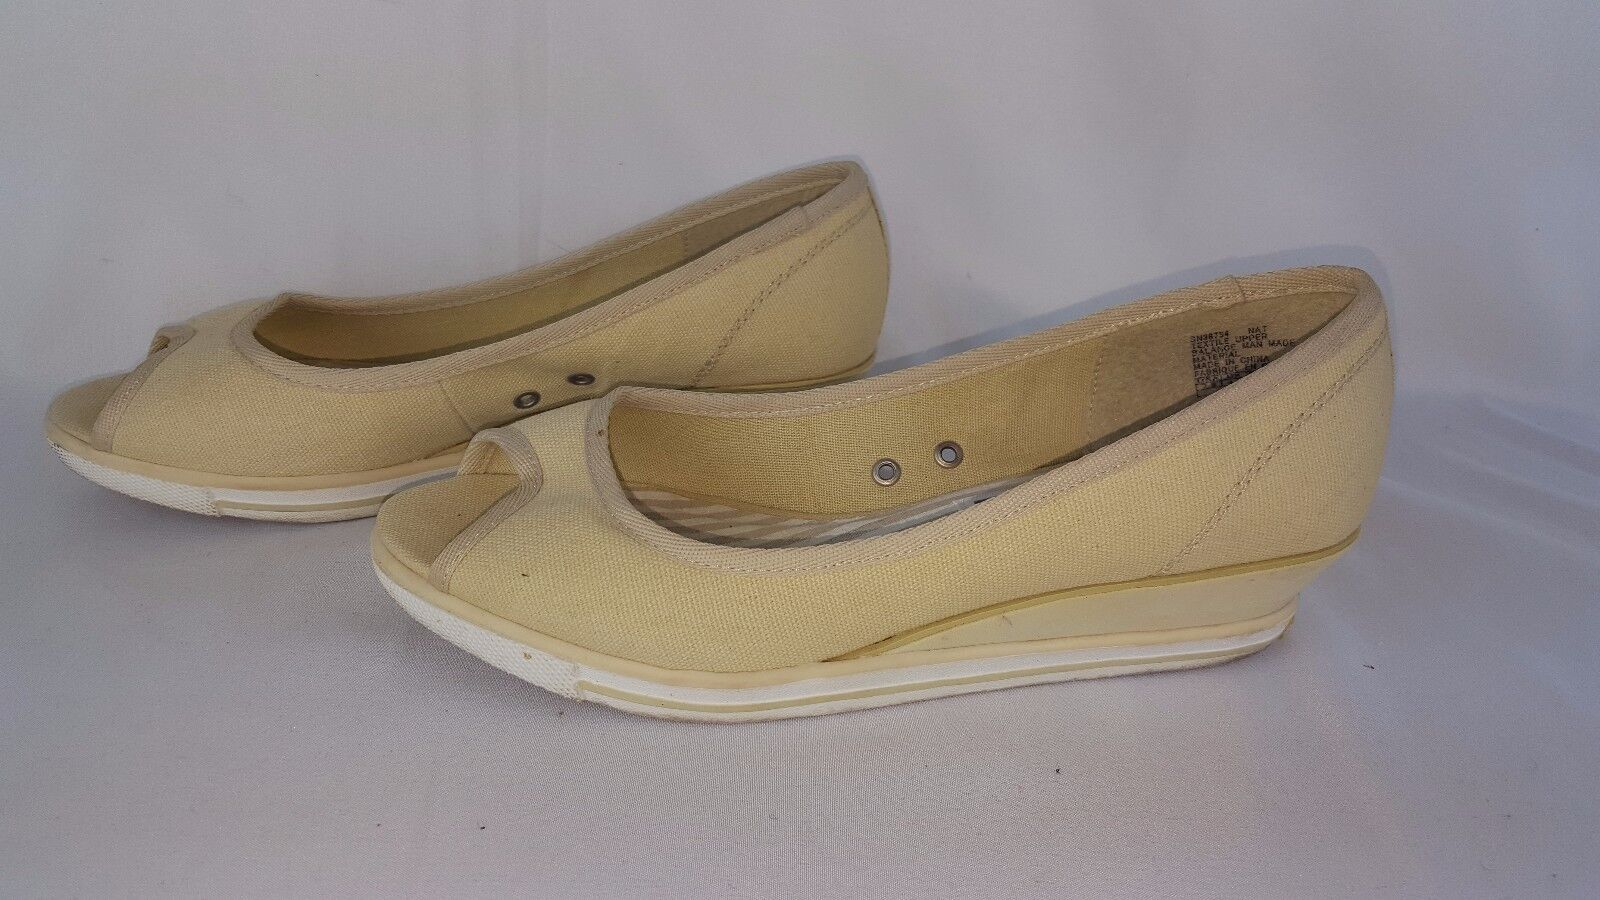 Skechers Cream Cali Slip On Canvas Shoes Women's size 7.5